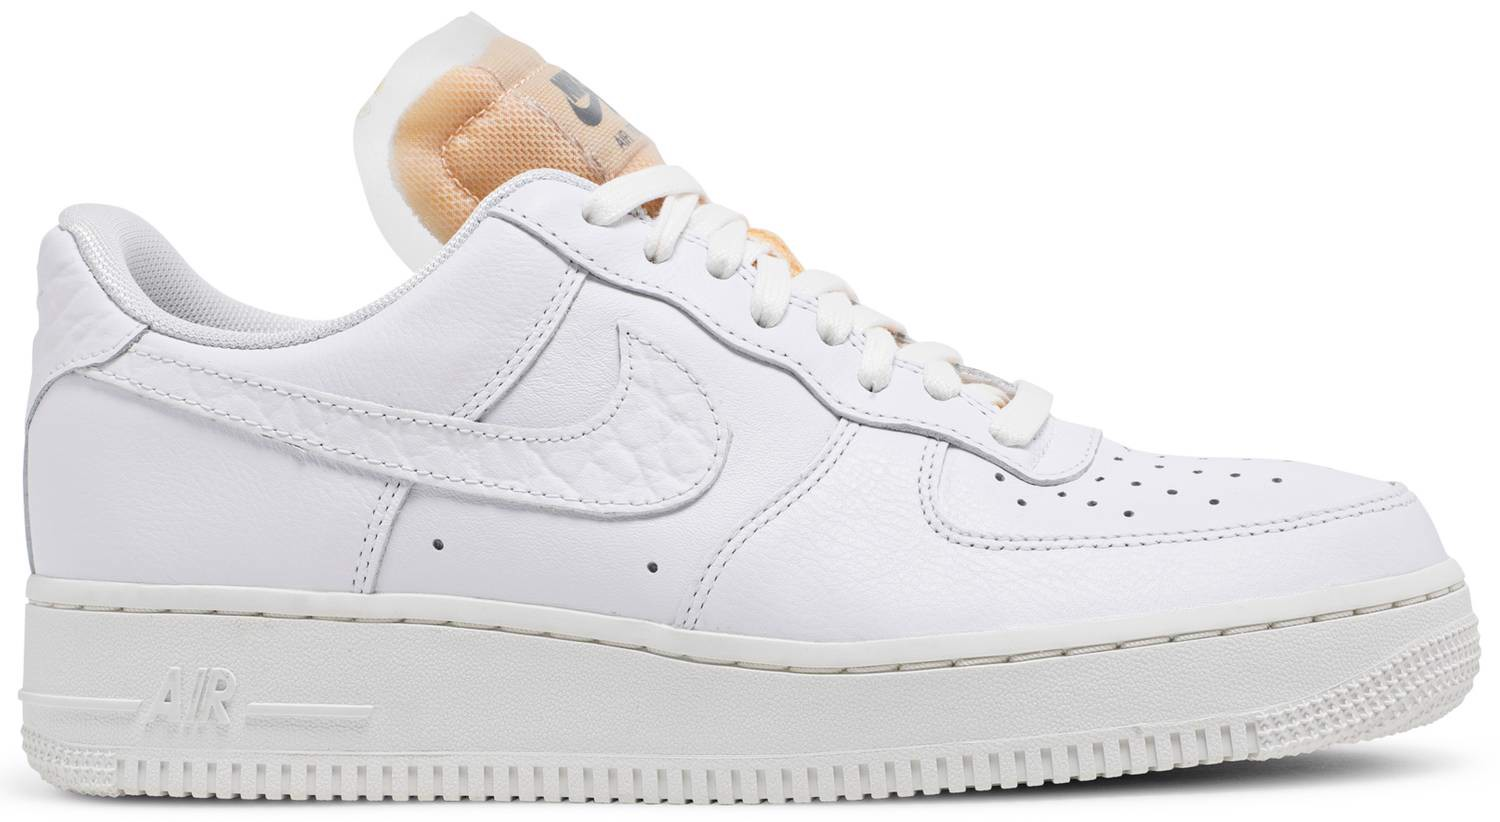 Nike Air Force 1 Low '07 LX 'Bling' CZ8101-100